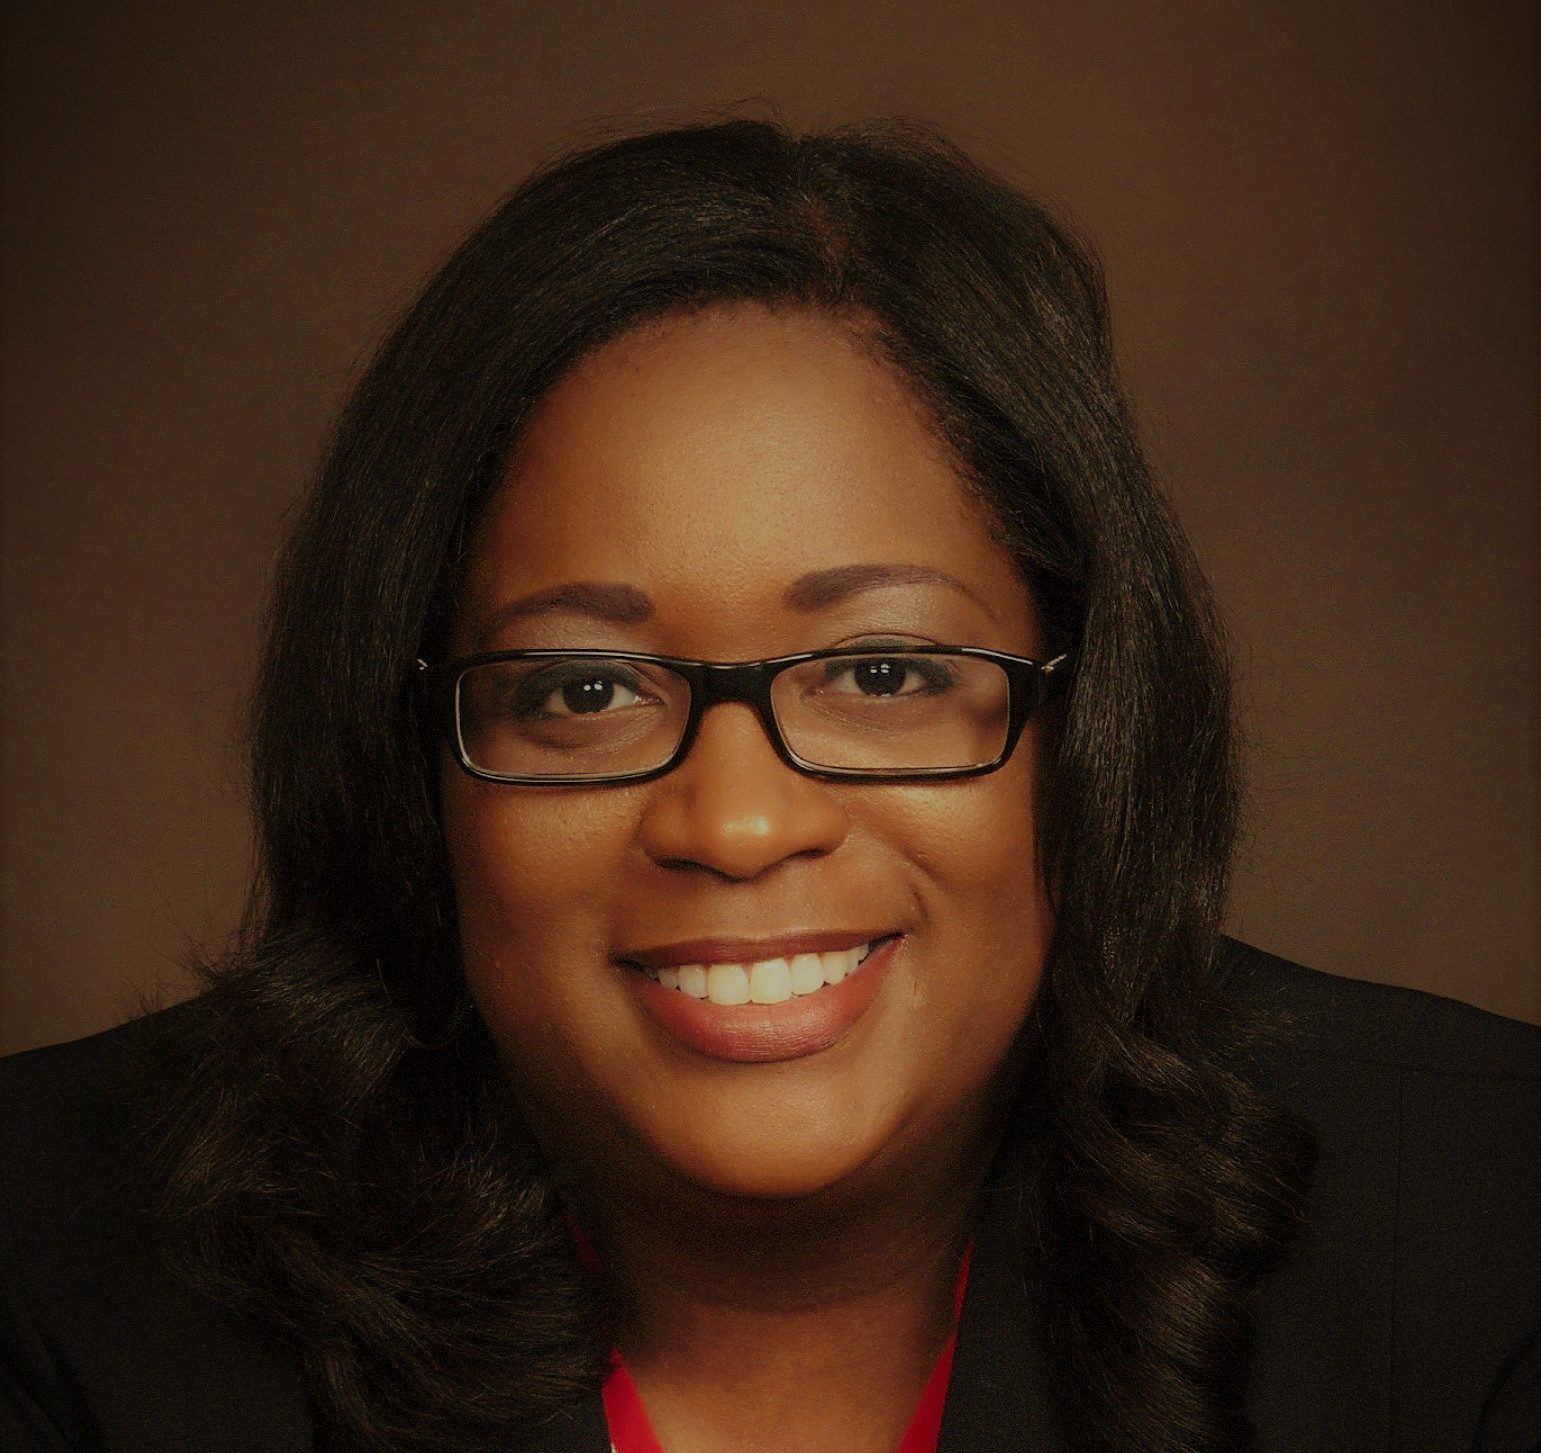 Meet Stacey Collier, District 4 City Council Candidate, South Fulton